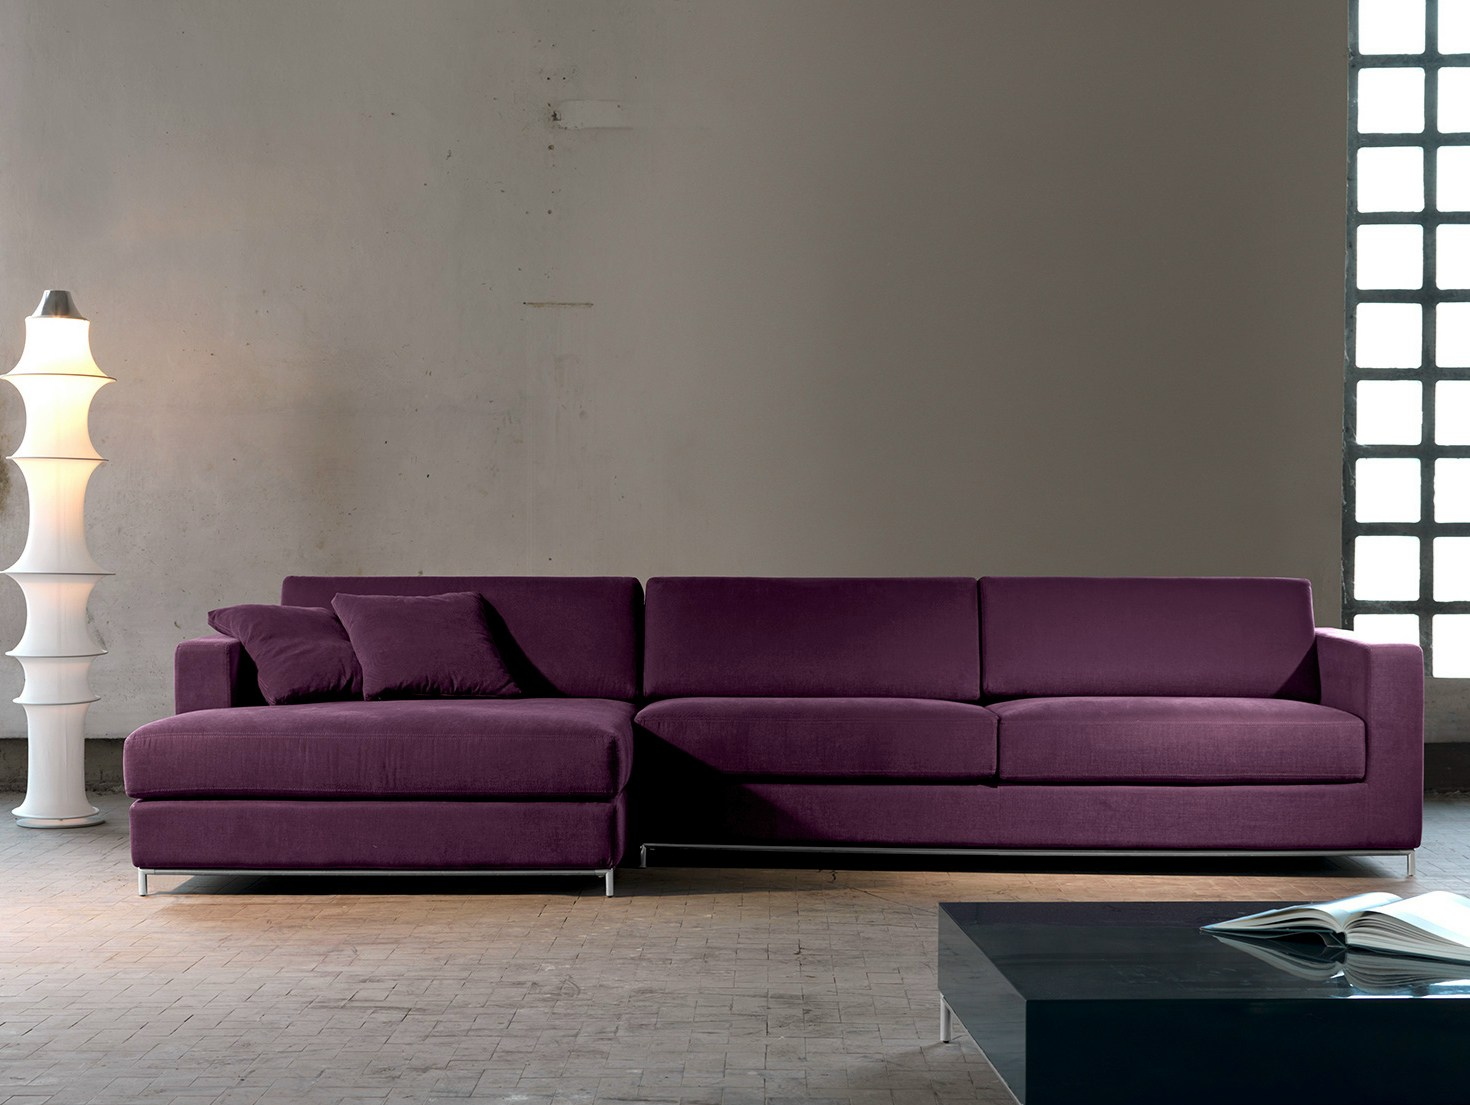 Newman canap avec m ridienne collection newman by domingo for Canape avec meridienne amovible